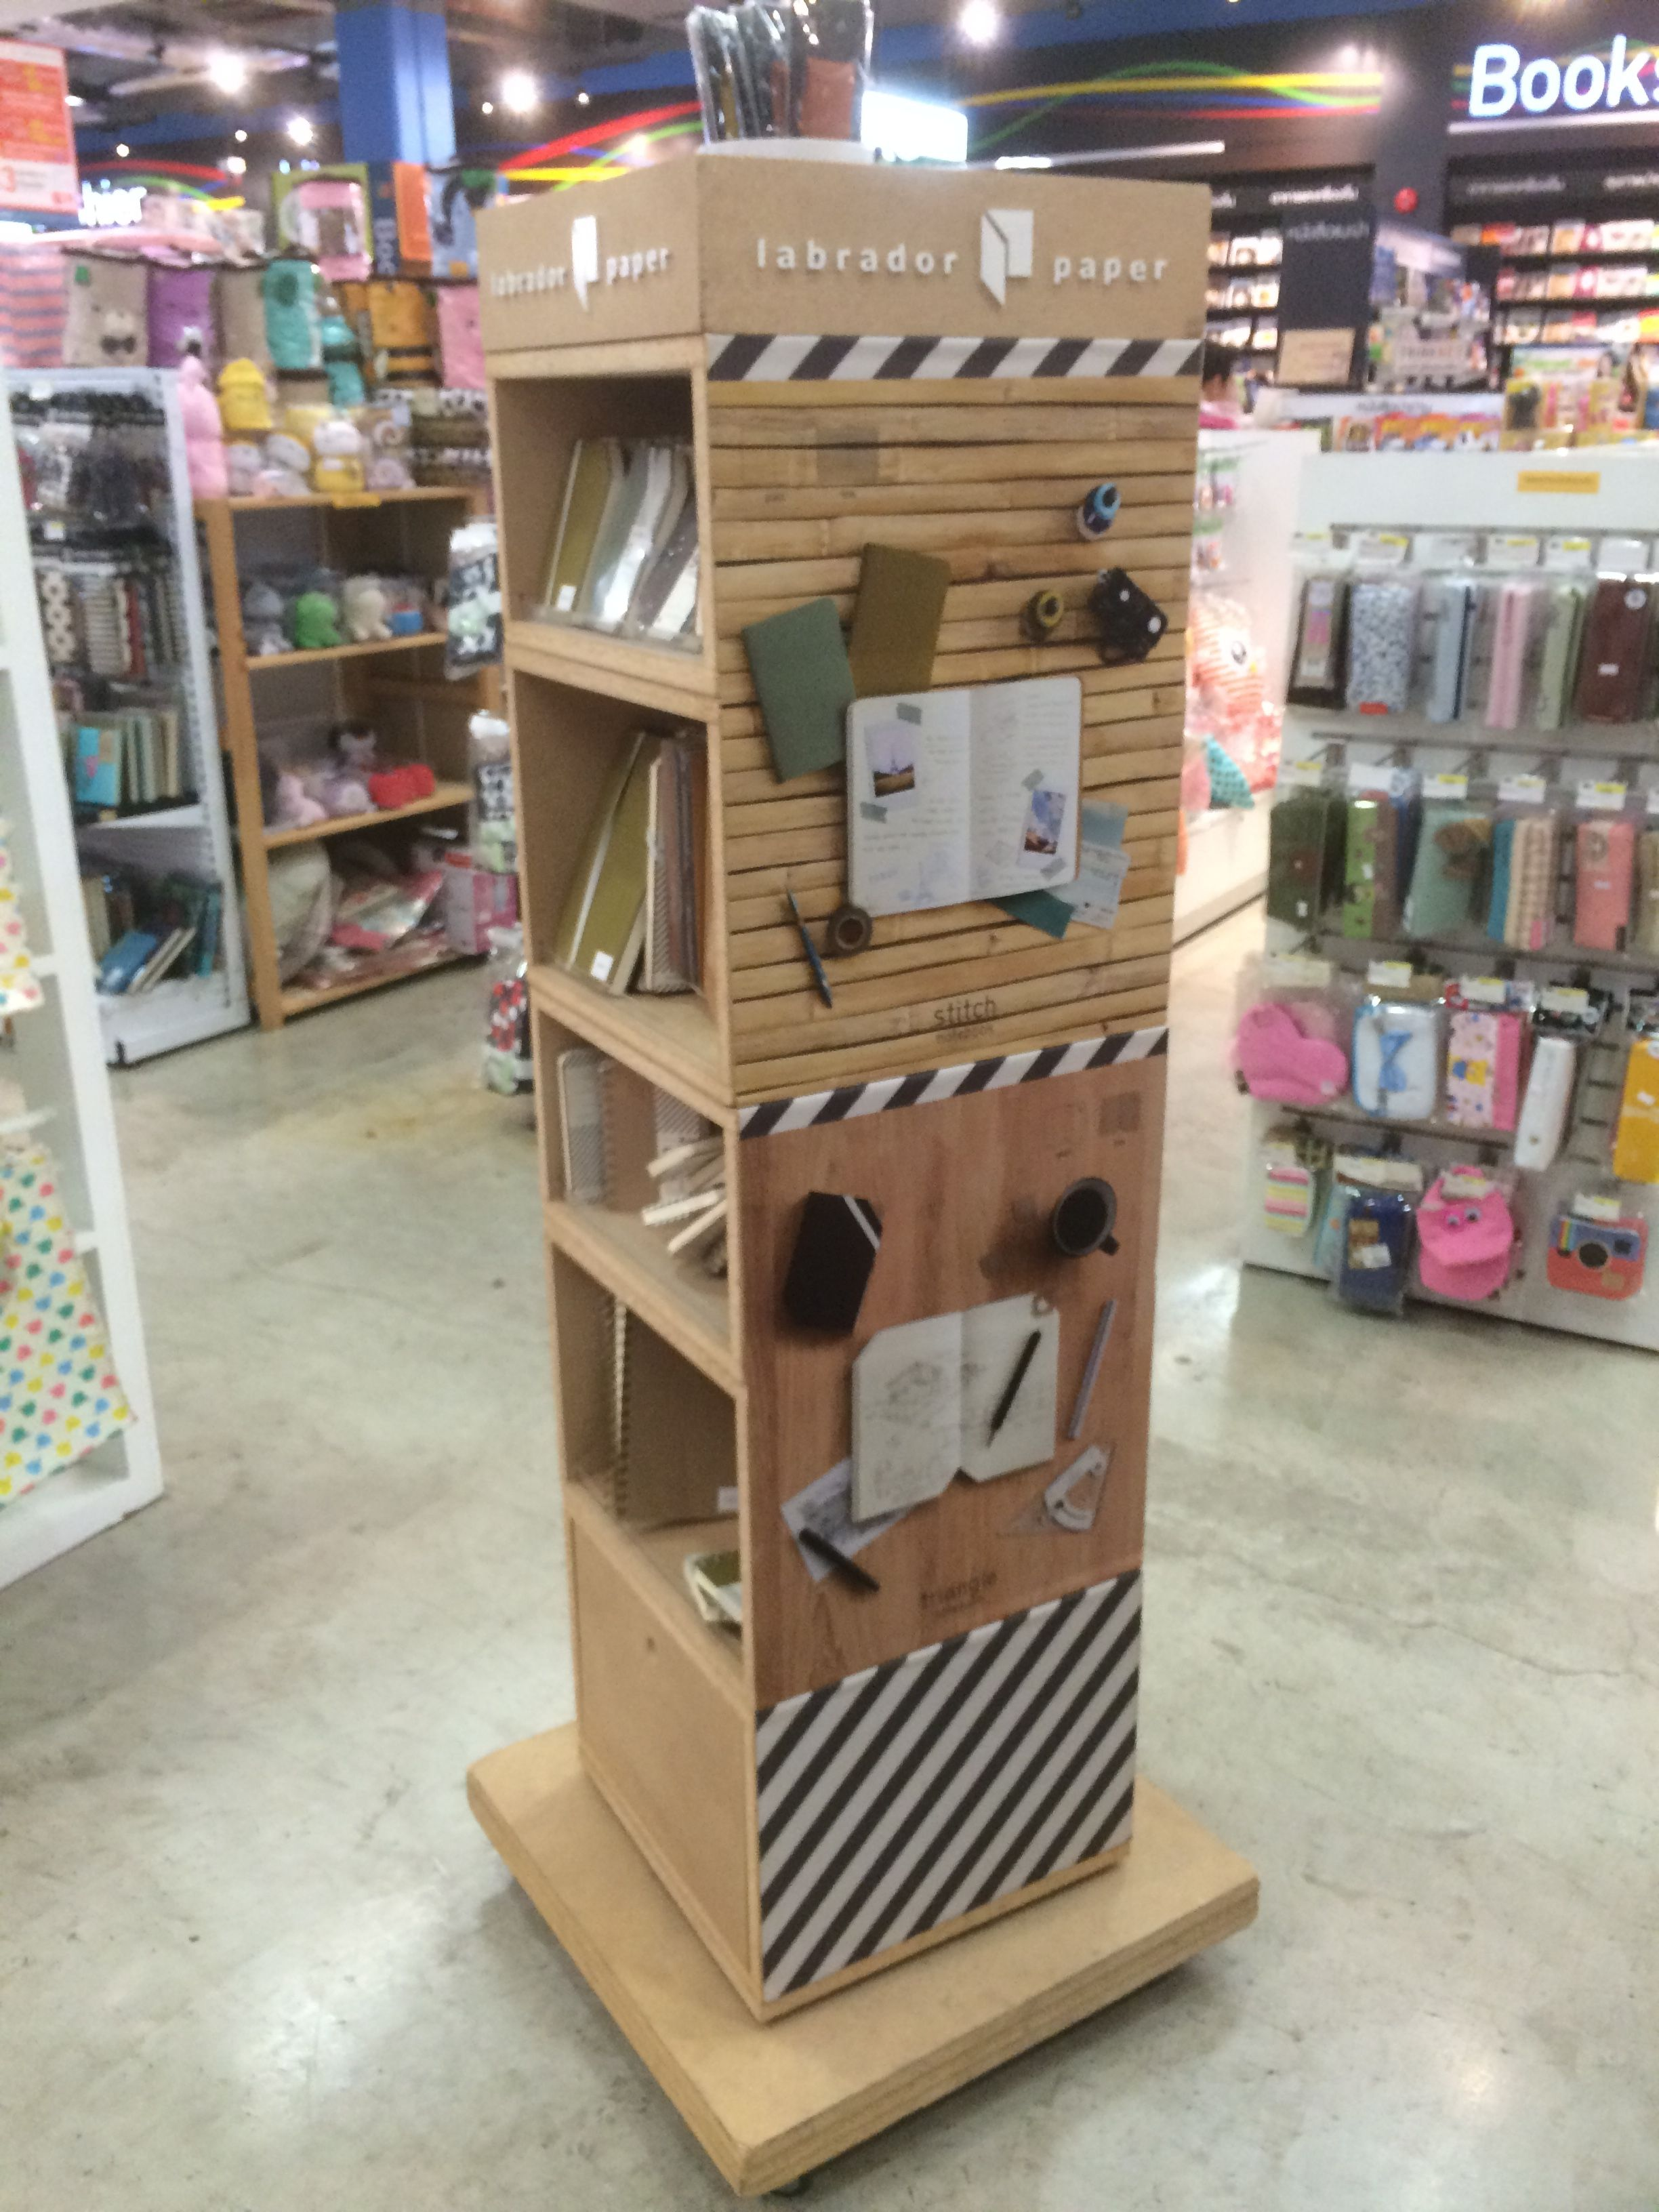 B2s Bang Na Thailand Stationery Books Fixtures Layout  # Muebles Makro Medellin